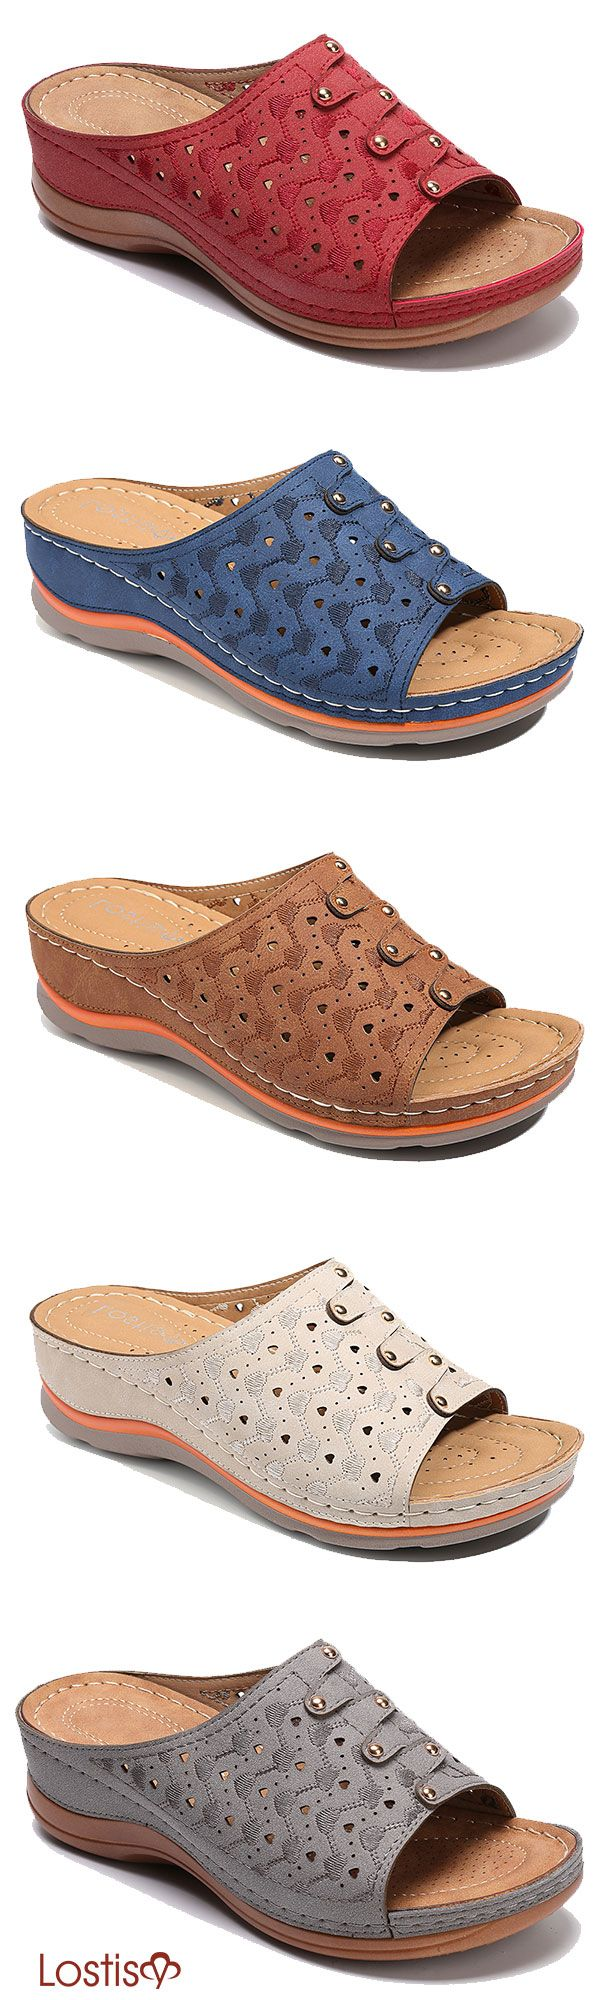 Photo of Wanna try shoes like walking on clouds?New Sandals—Superb Light & Comfy#sale